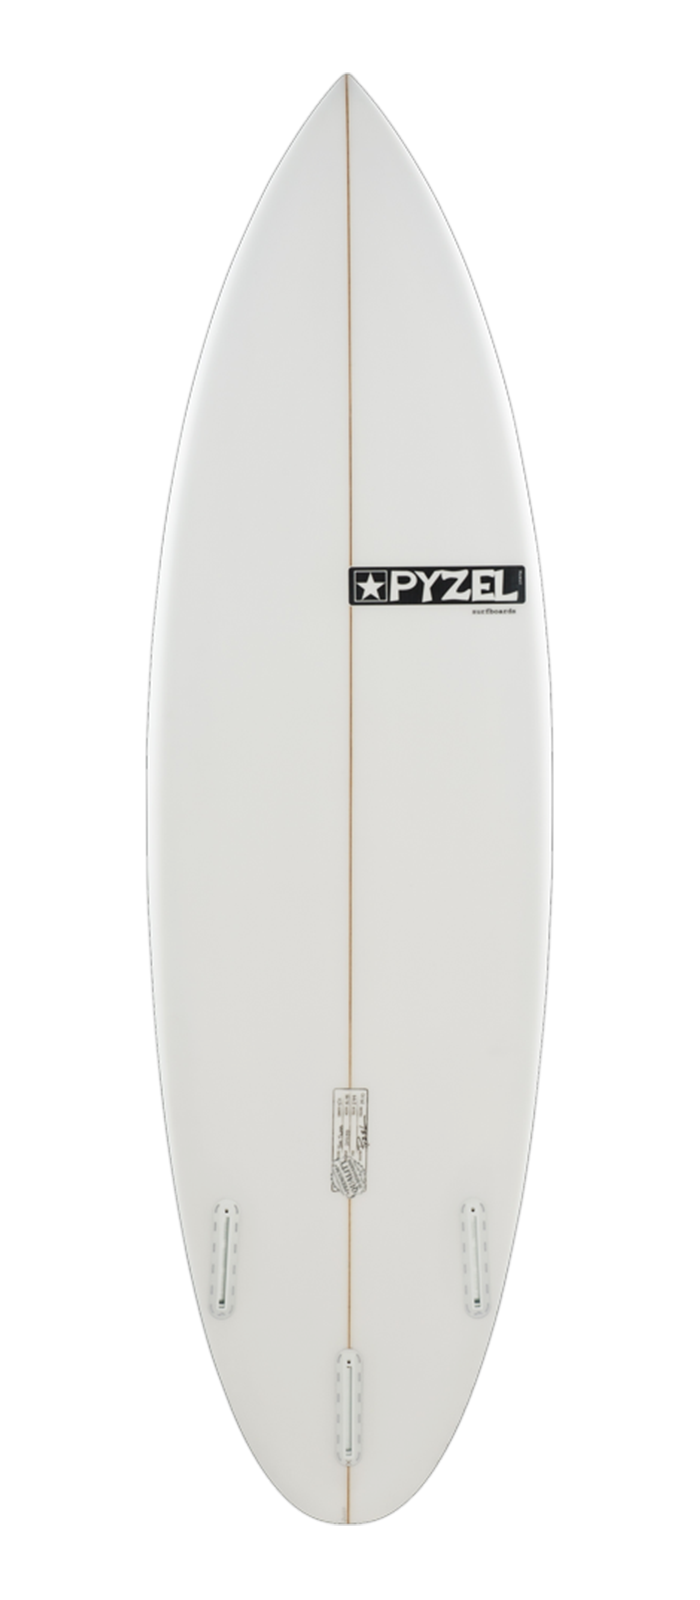 THE SLAB surfboard model bottom